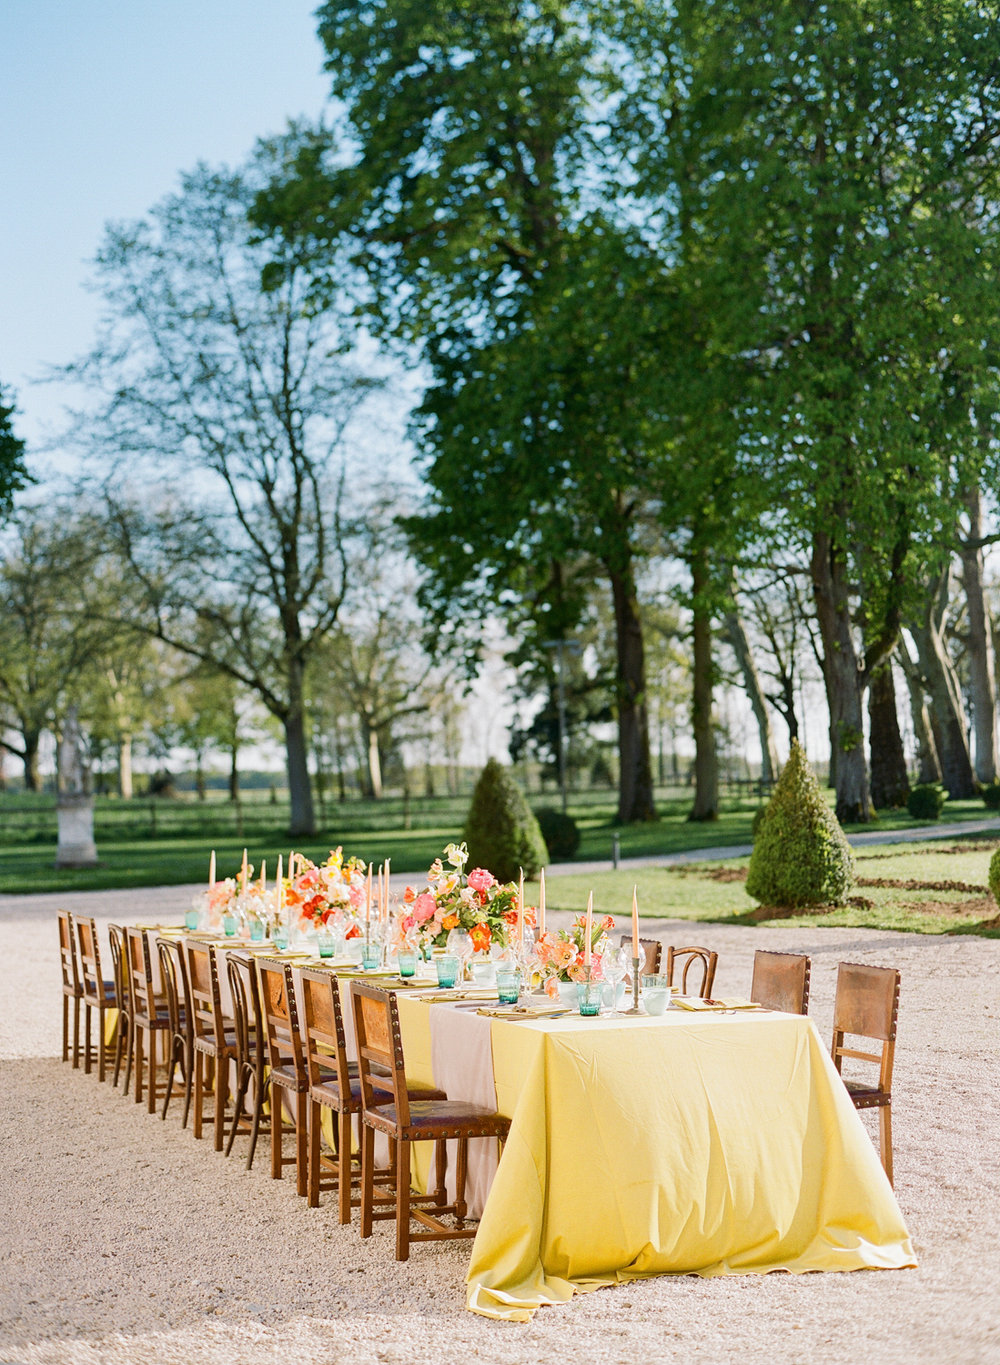 A bright jewel-toned wedding reception table at Chateau de Varennes; Sylvie Gil Photography